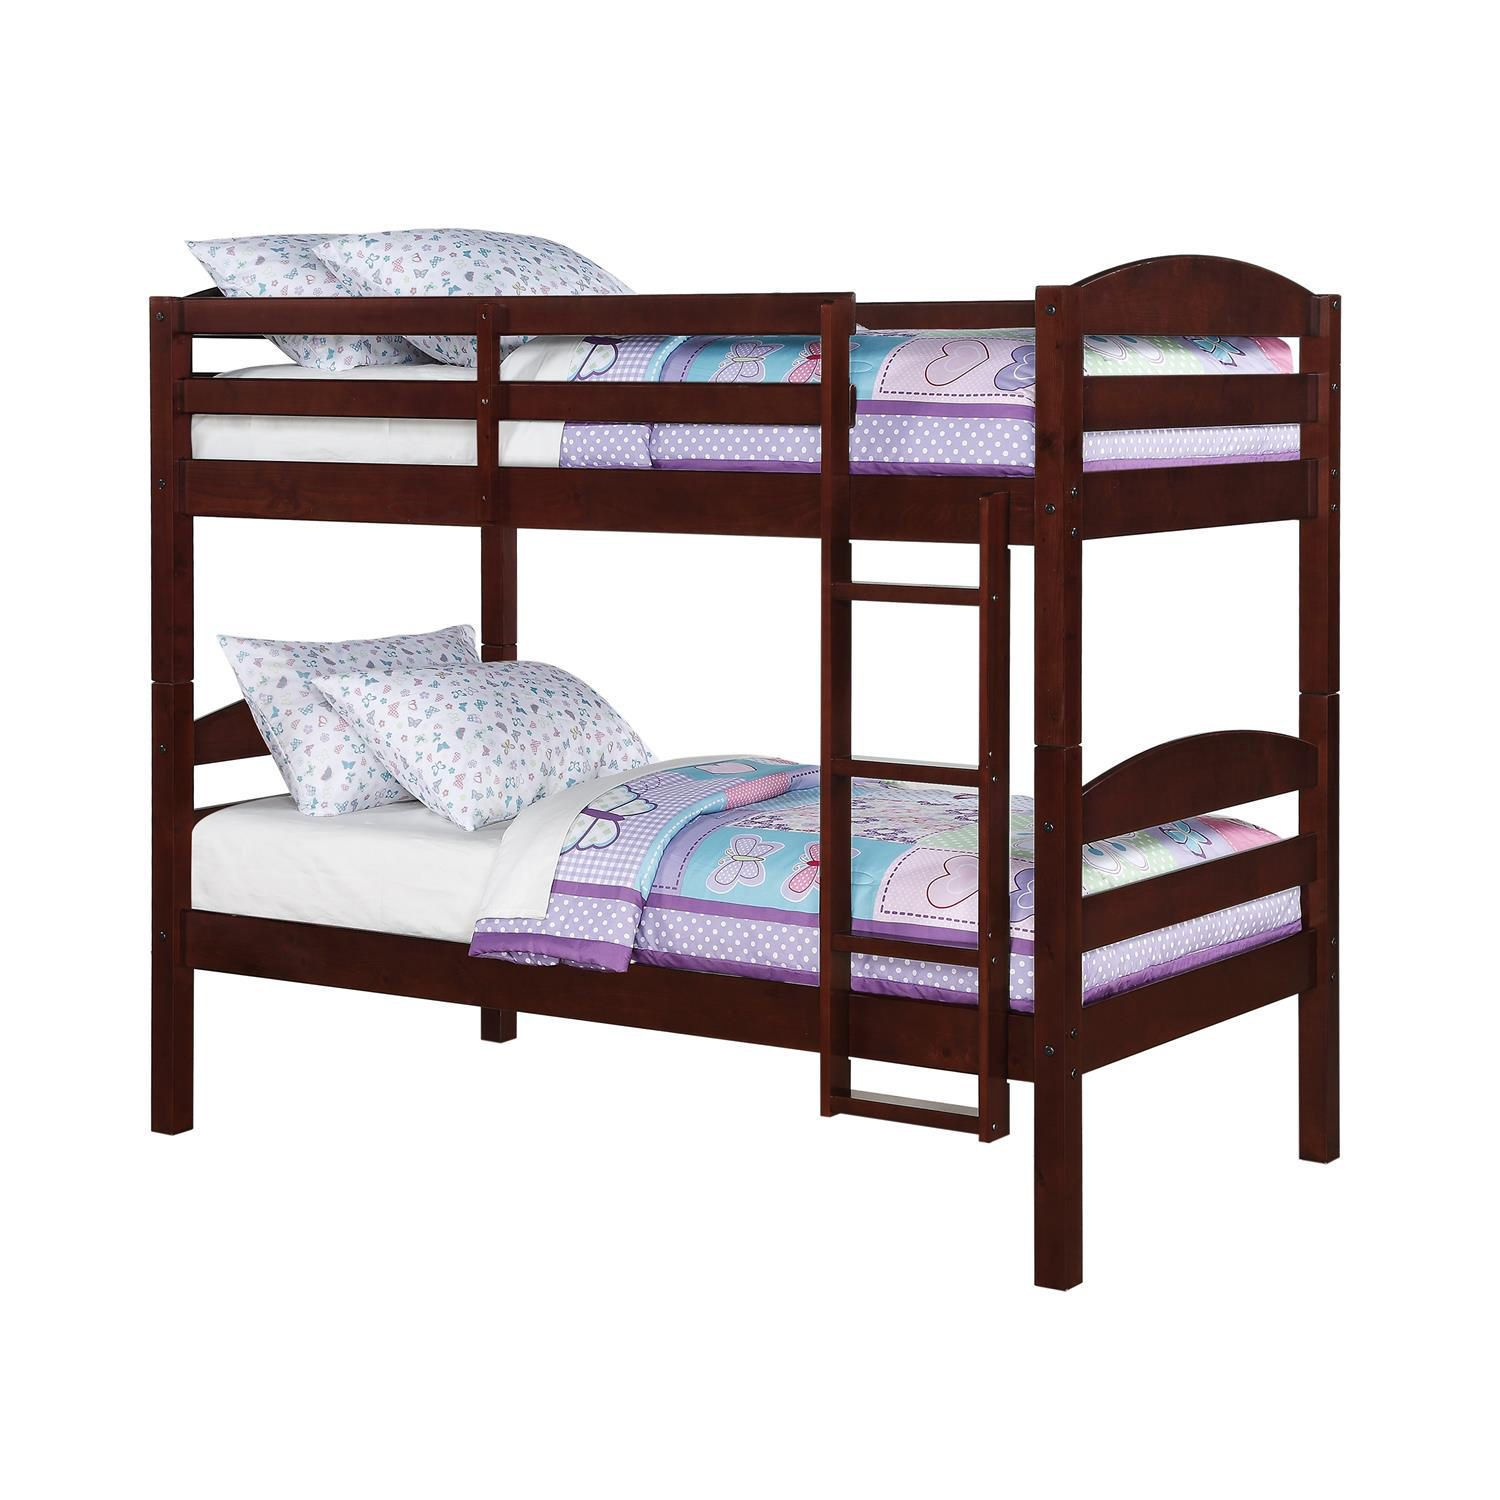 Toddler bunk beds and loft beds browse read reviews discover - Mainstays Twin Twin Wood Bunk Bed